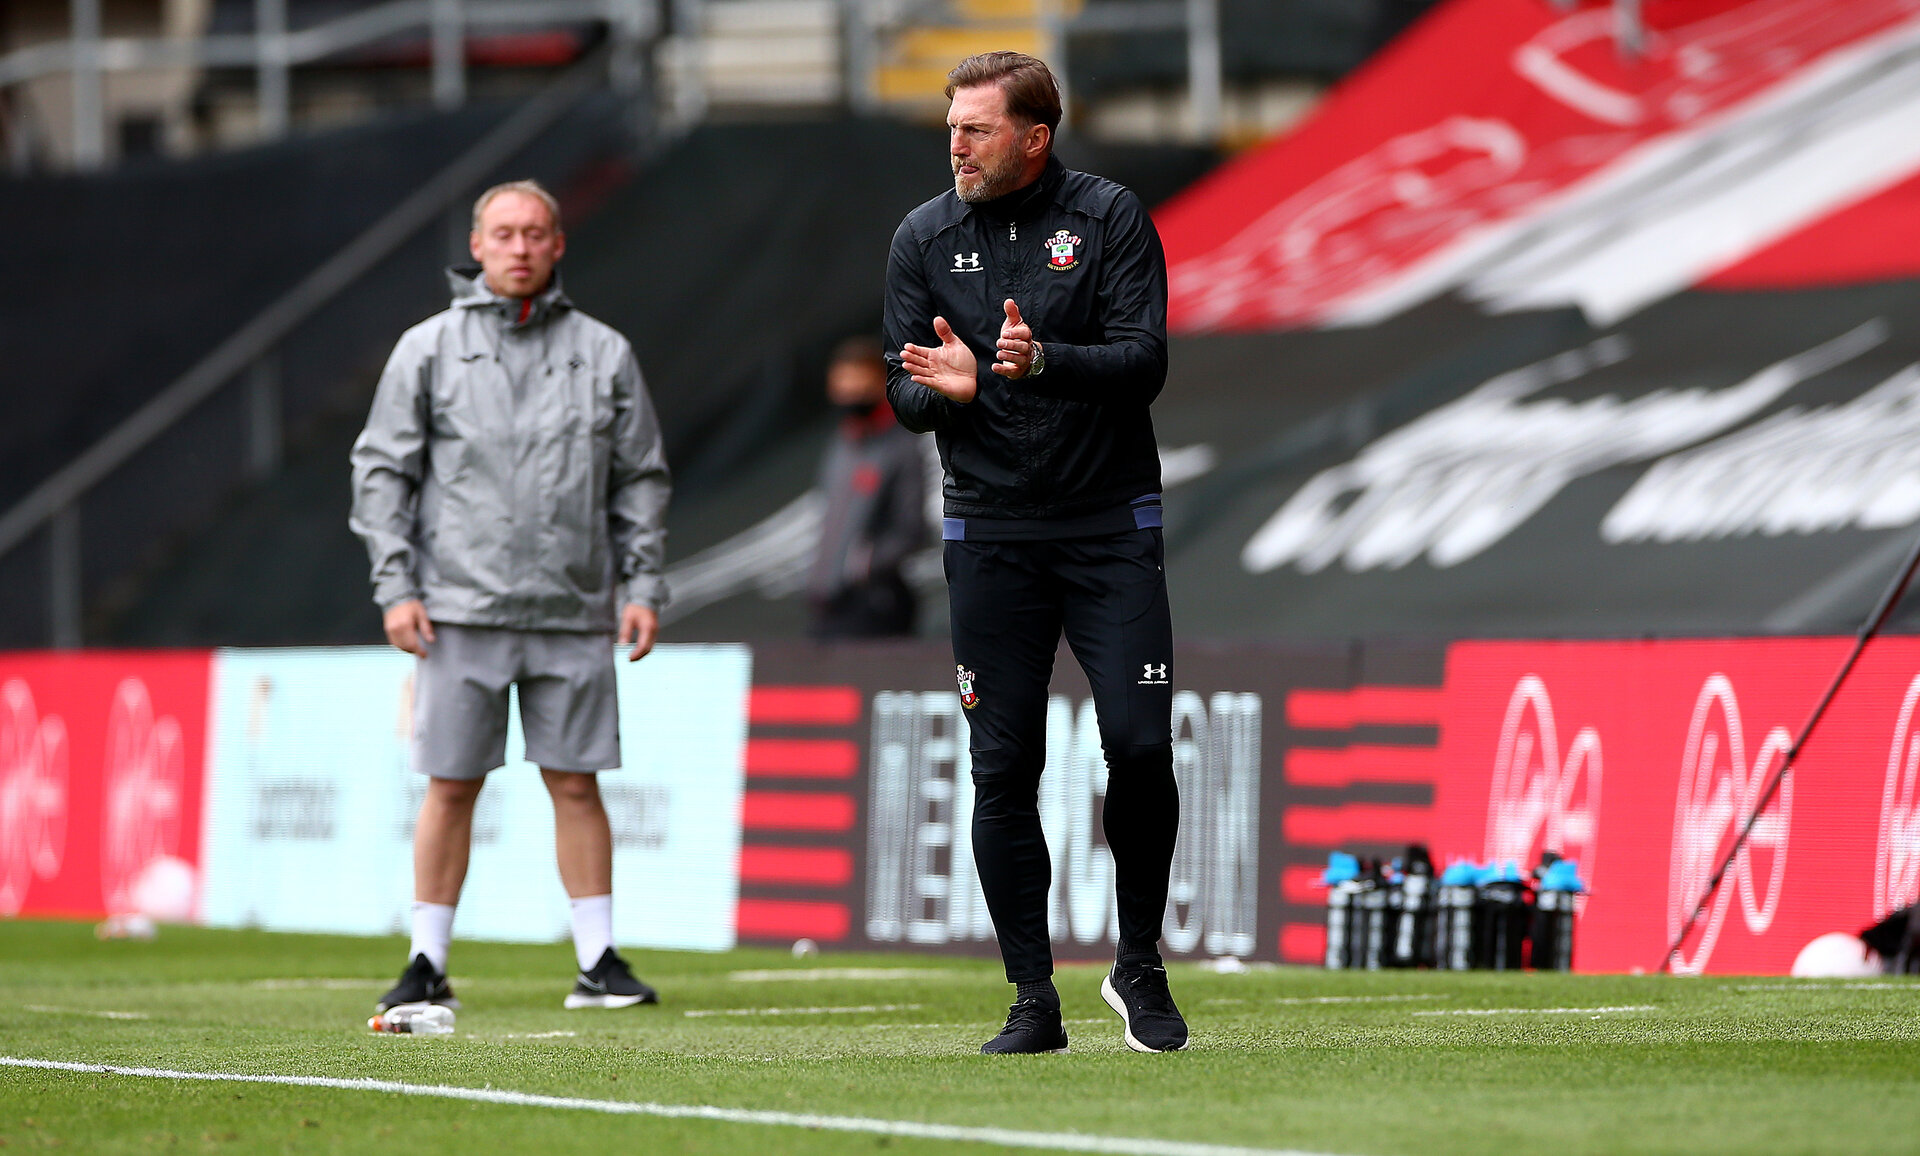 SOUTHAMPTON, ENGLAND - AUGUST 29: Ralph Hasenhuttl during a pre-season friendly between Southampton FC and Swansea City at St Marys Stadium, on August 29, 2020 in Southampton, England. (Photo by Matt Watson/Southampton FC via Getty Images)